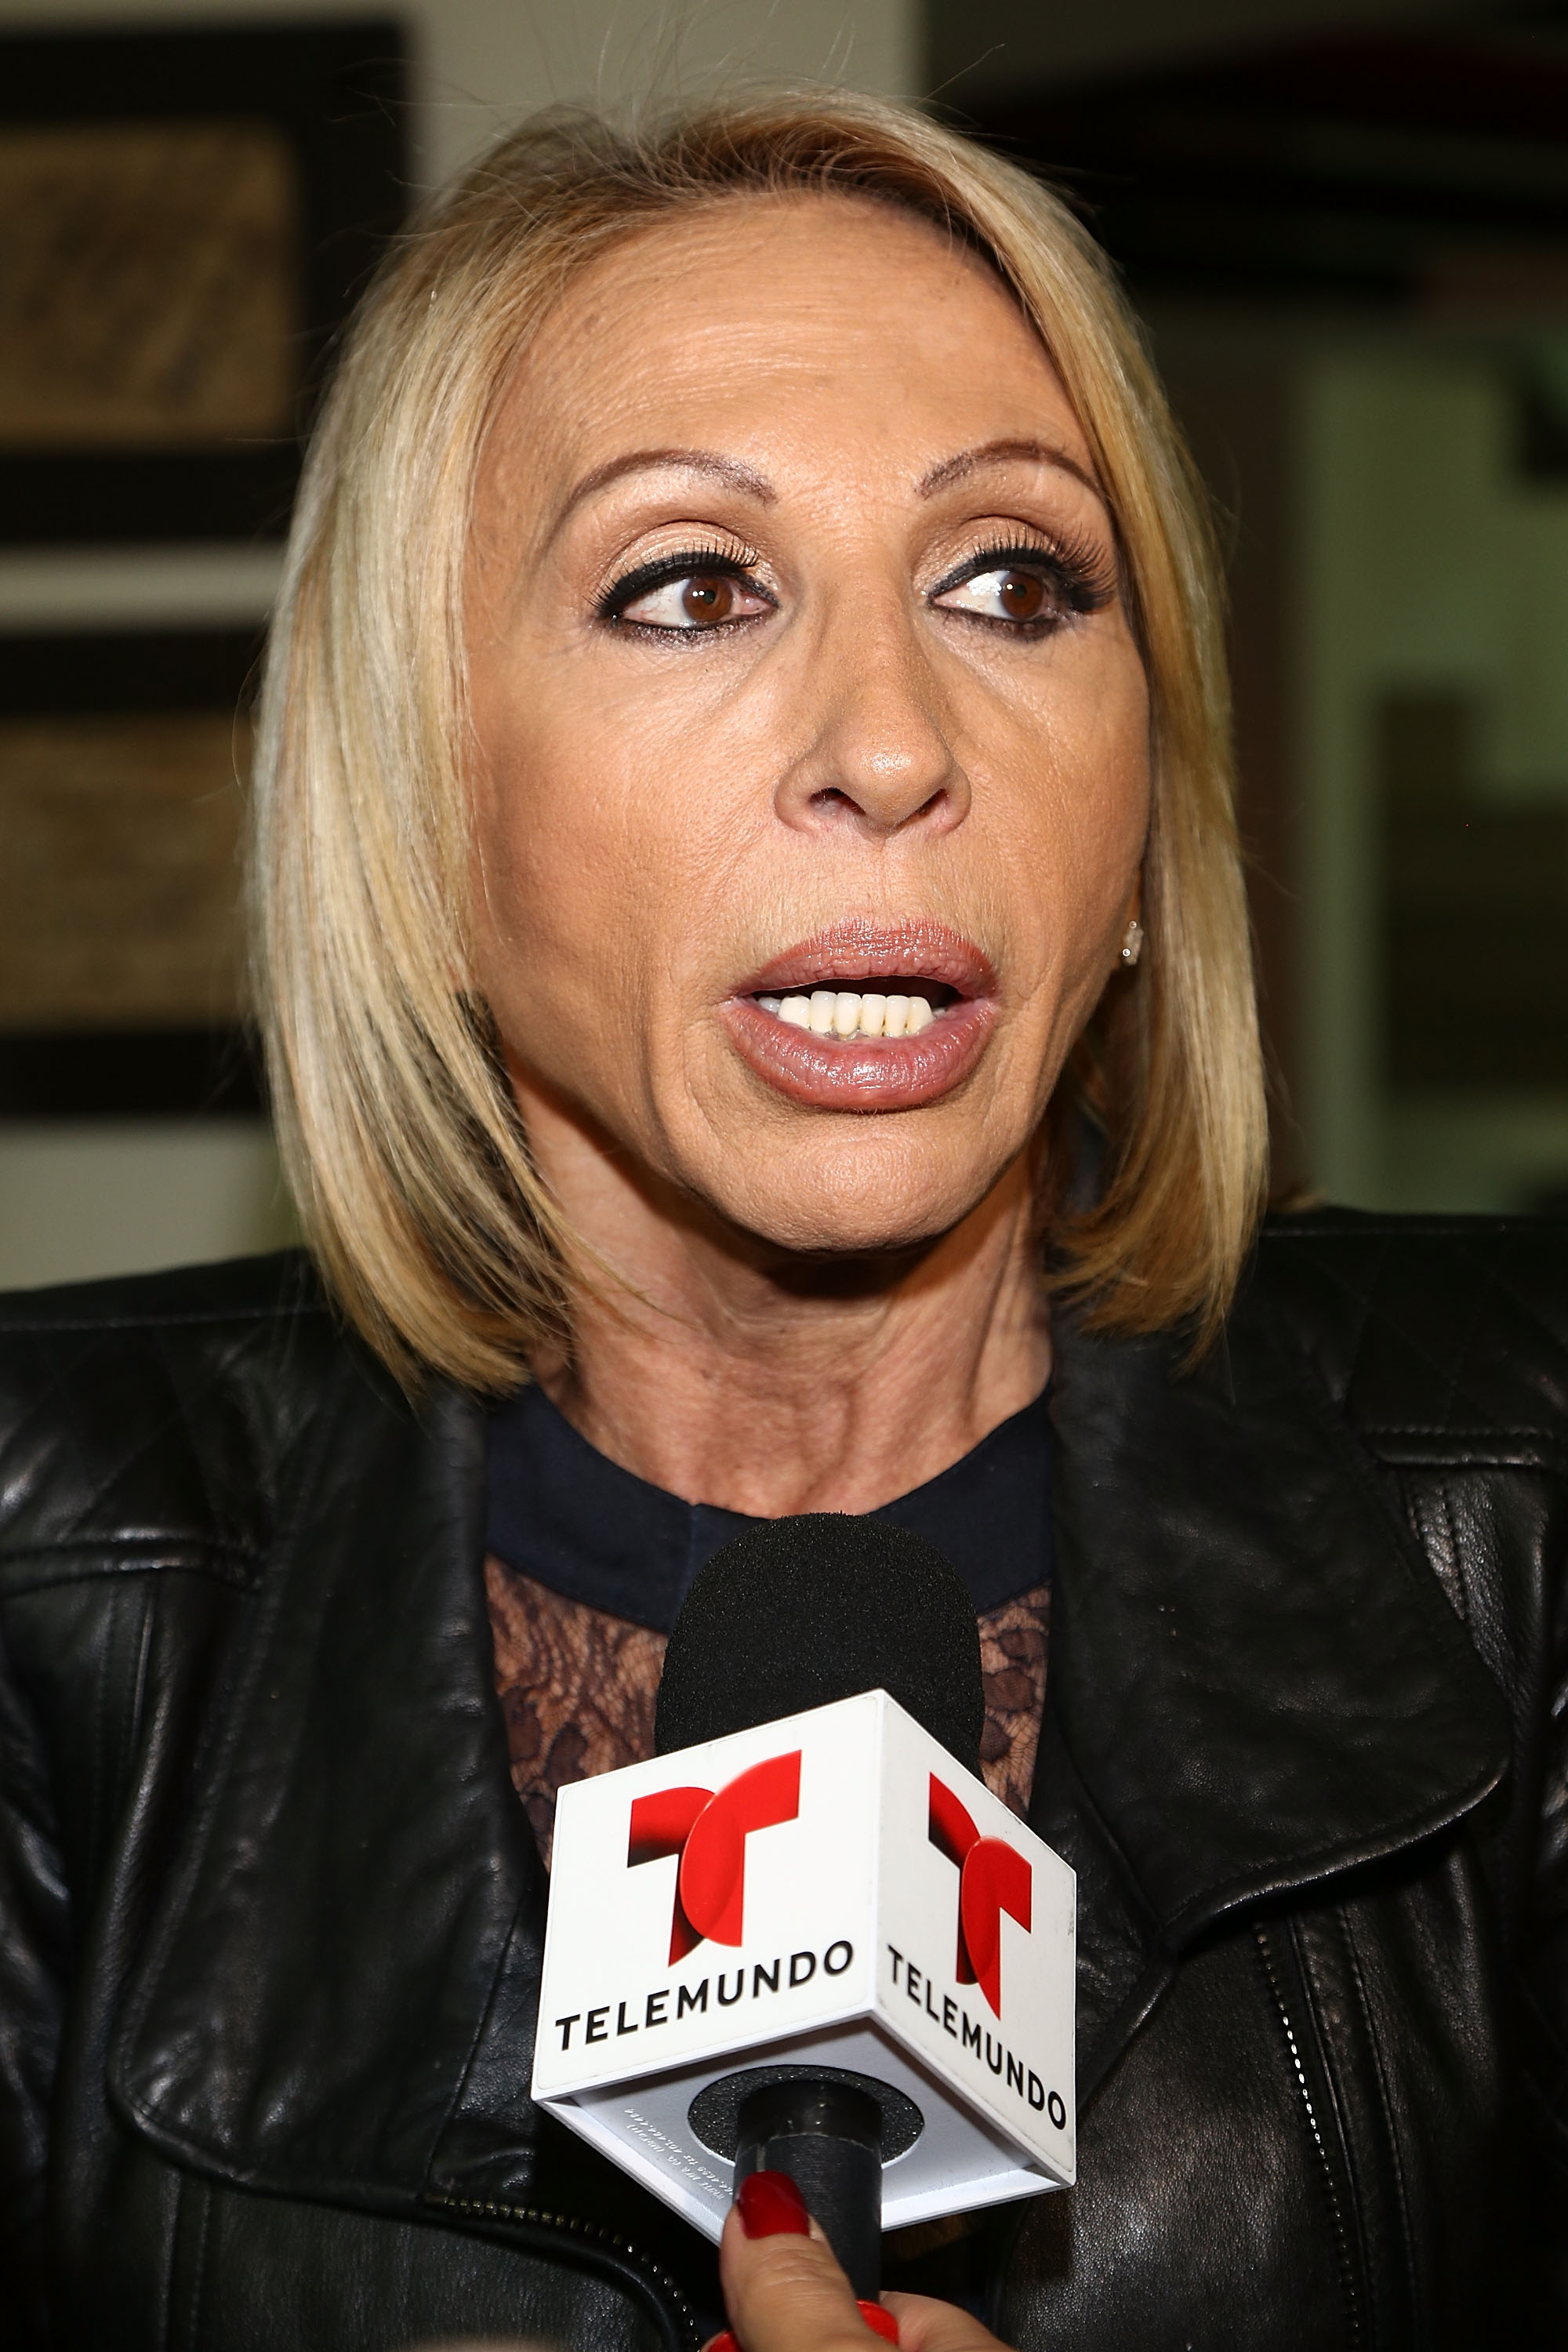 laura bozzo connection   criminal network  peru exposed cries  carmen aristegui